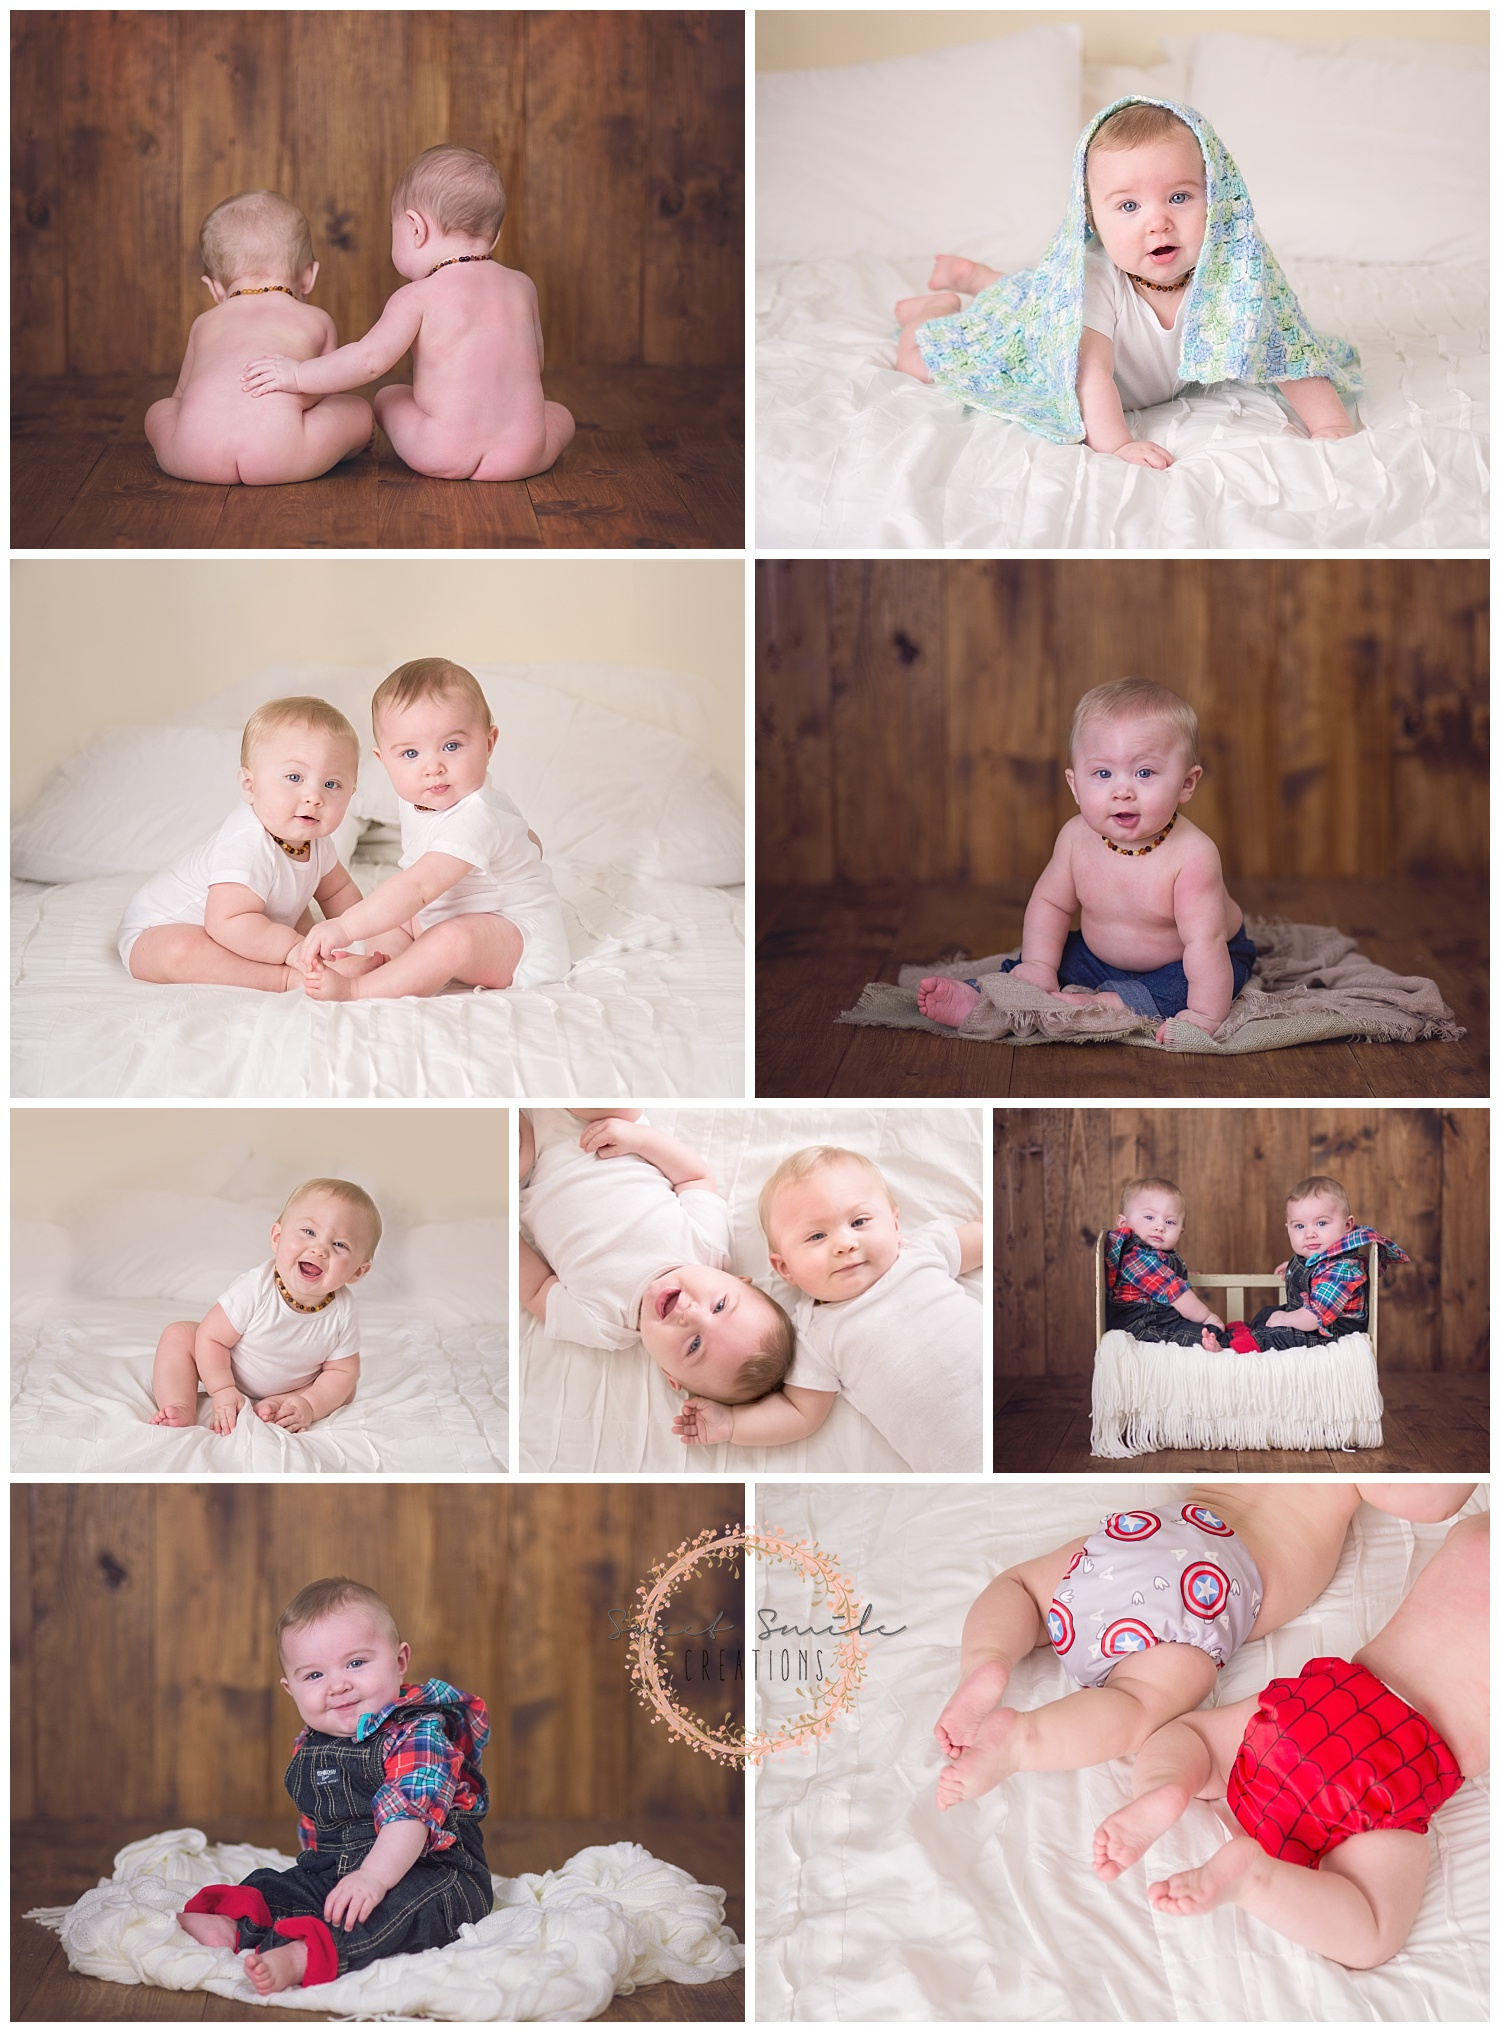 Twin 6 month old boys. Baby Session. www.sweetsmilecreations.com